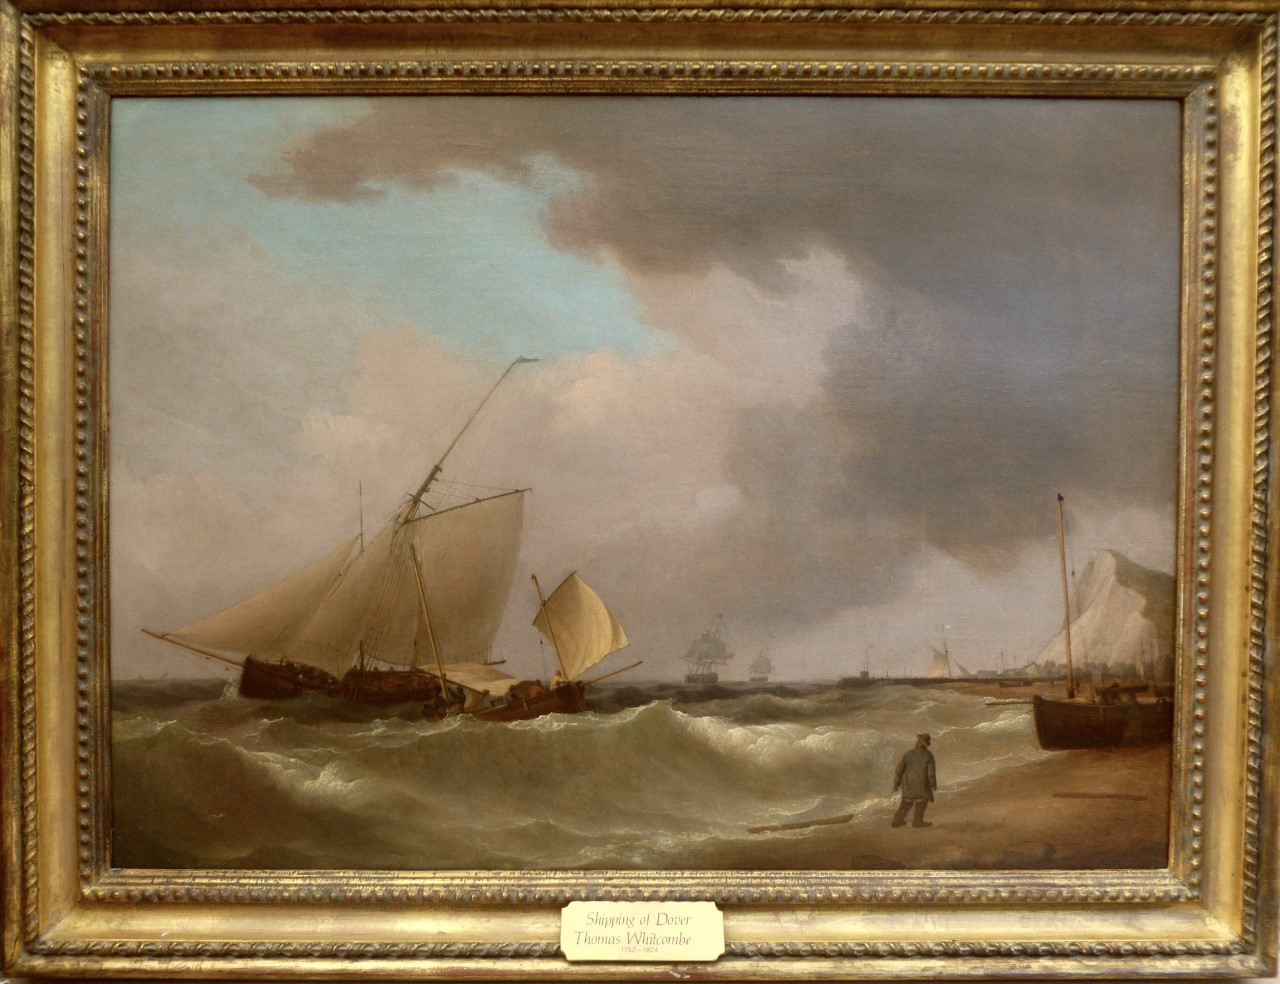 Thomas Whitcombe - Shipping of Dover